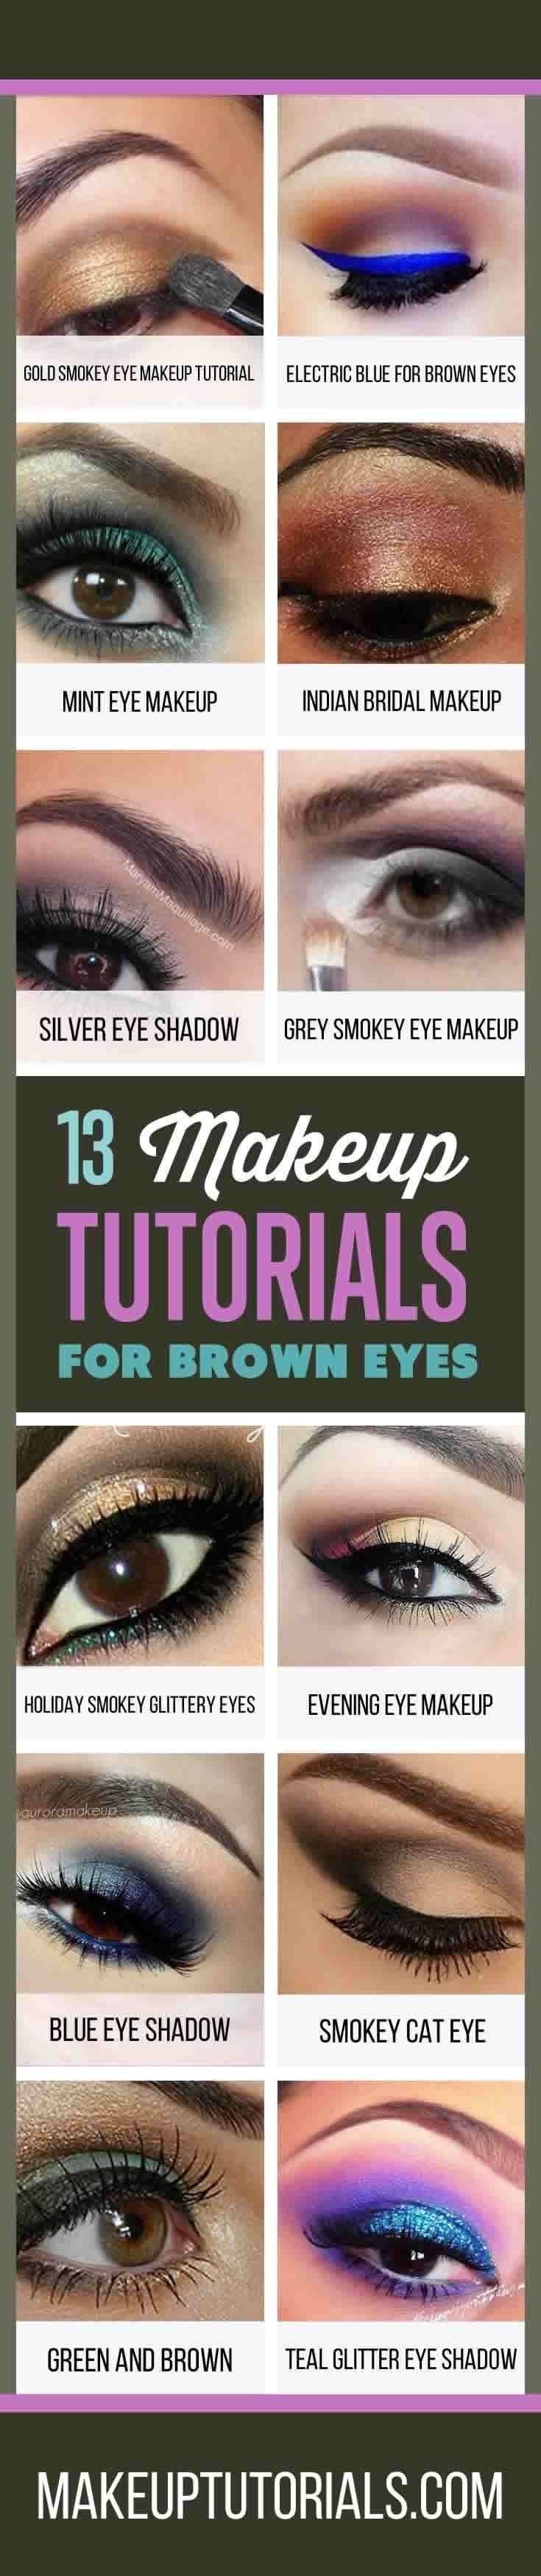 How To Do Awesome Makeup Tutorials For Brown Eyes | Cool Makeup Ideas and Easy D...